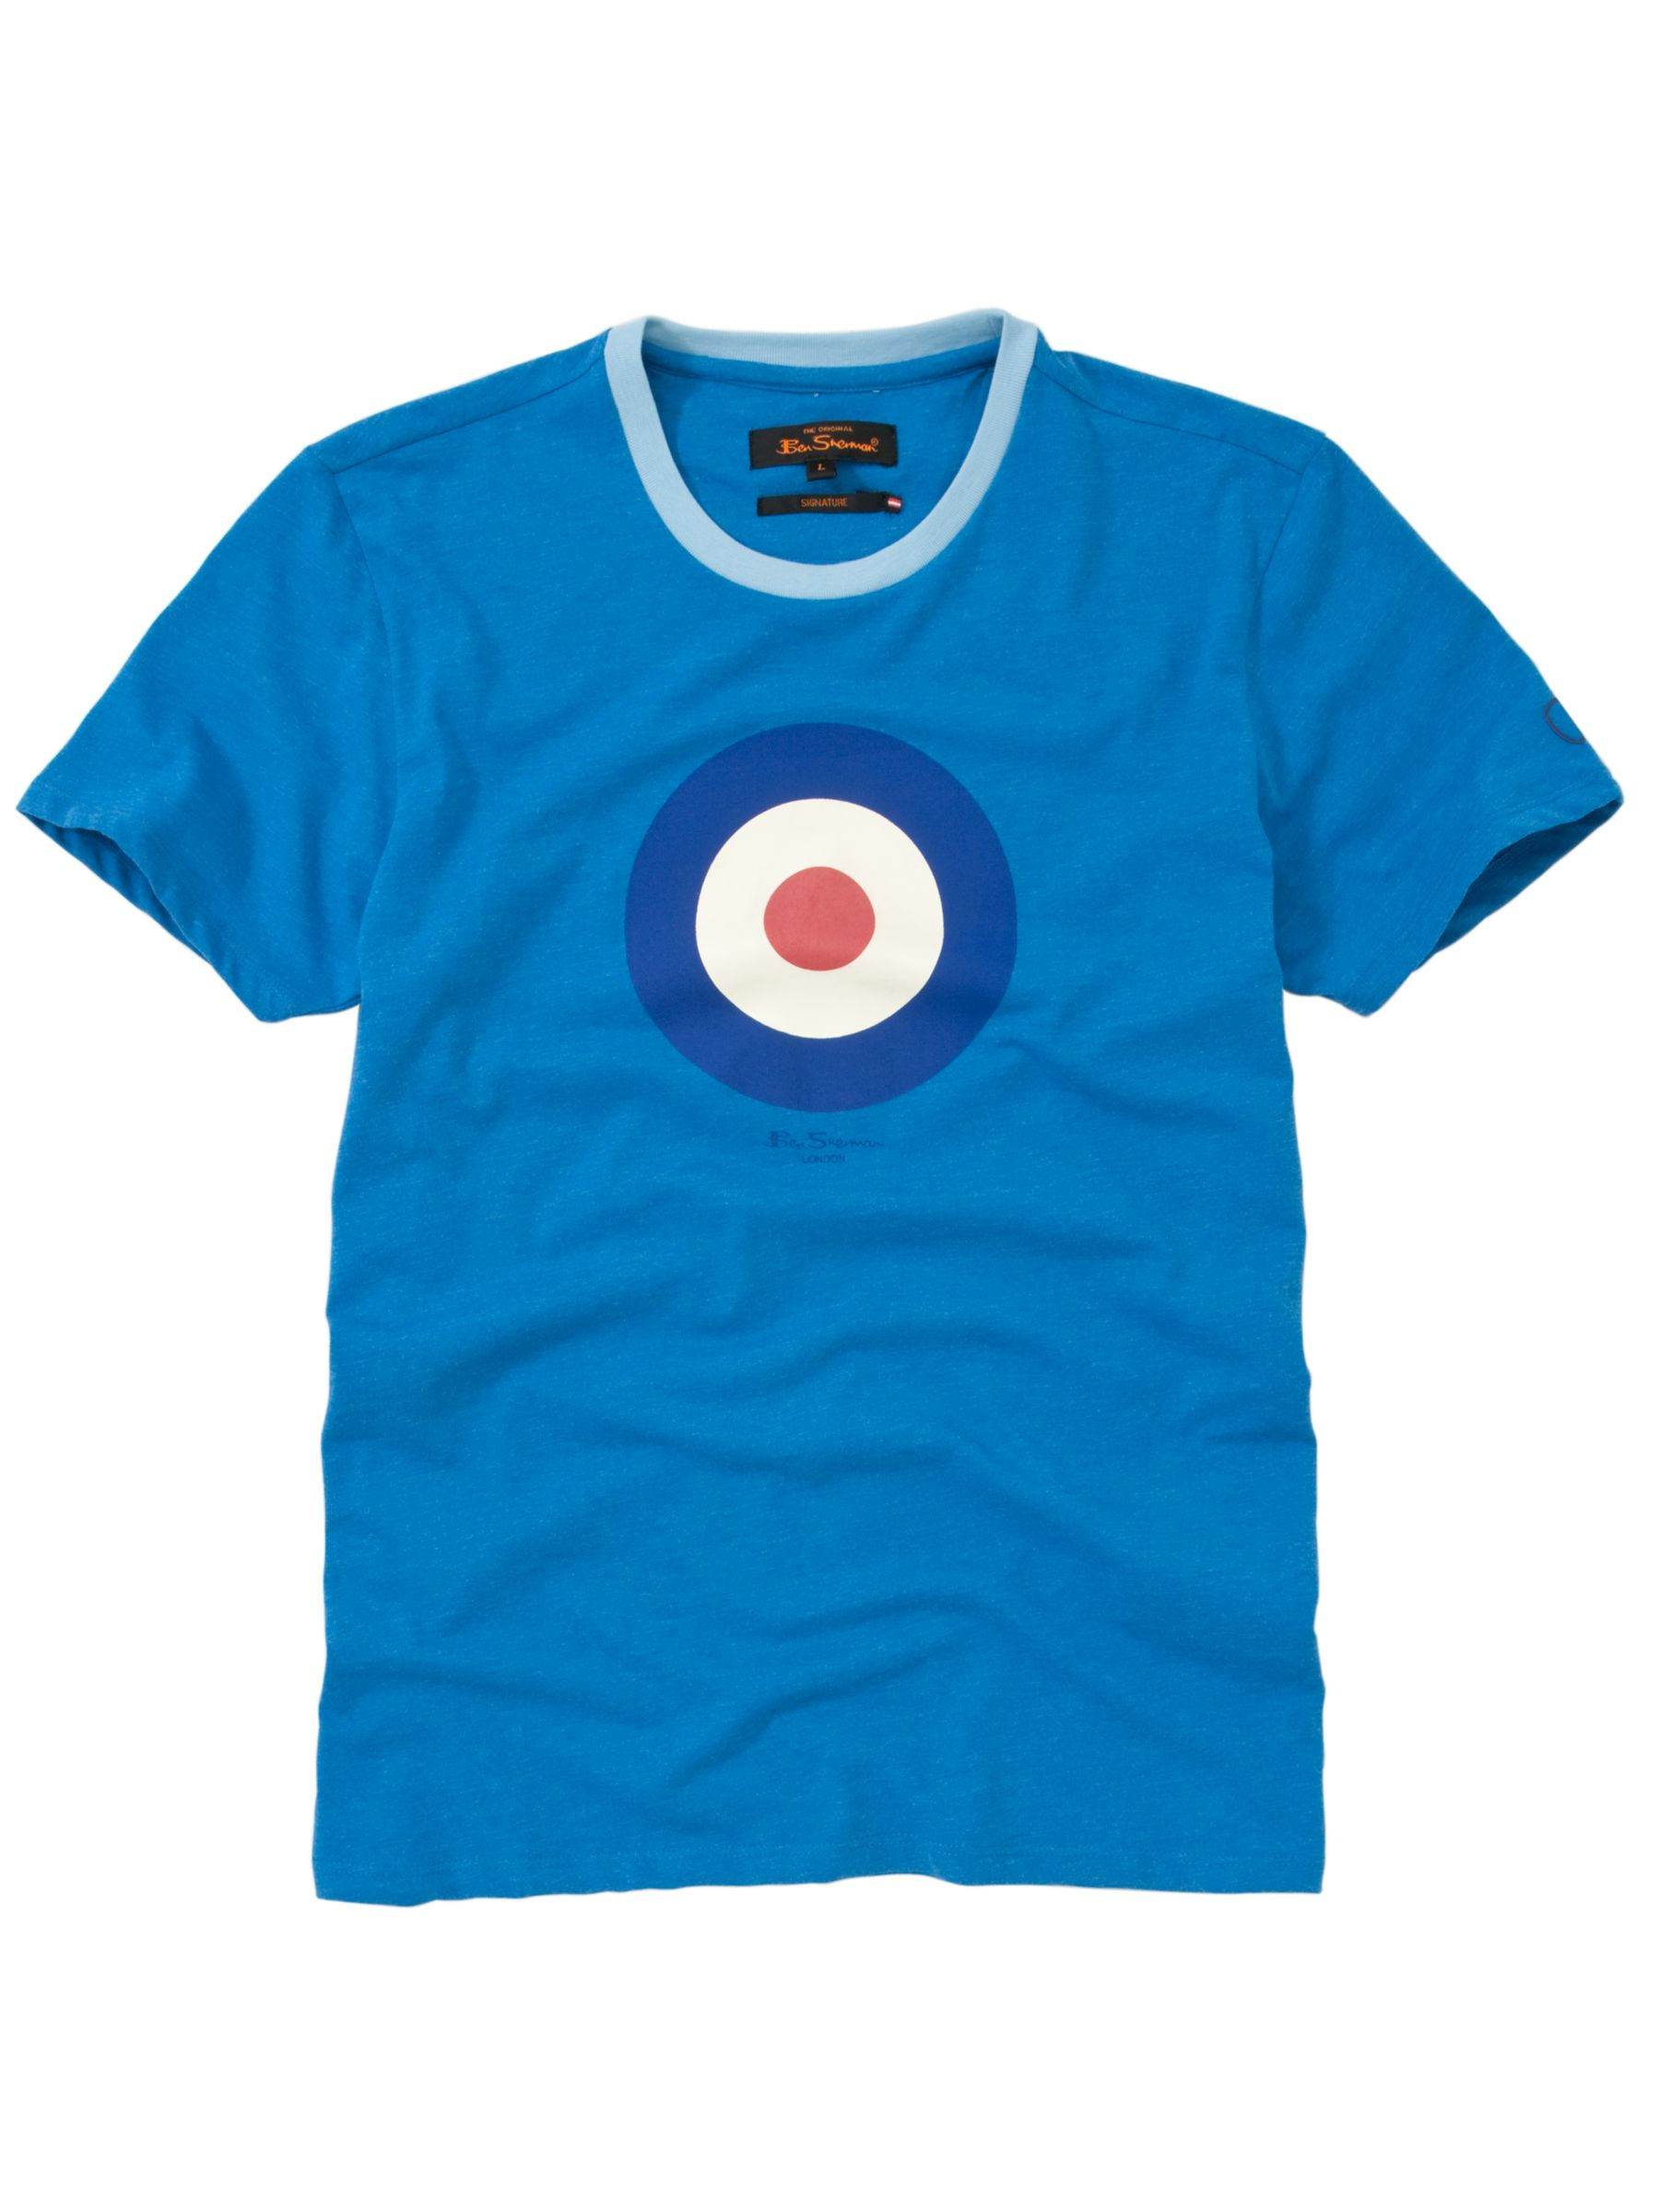 Throne Target Print T-Shirt, Blue